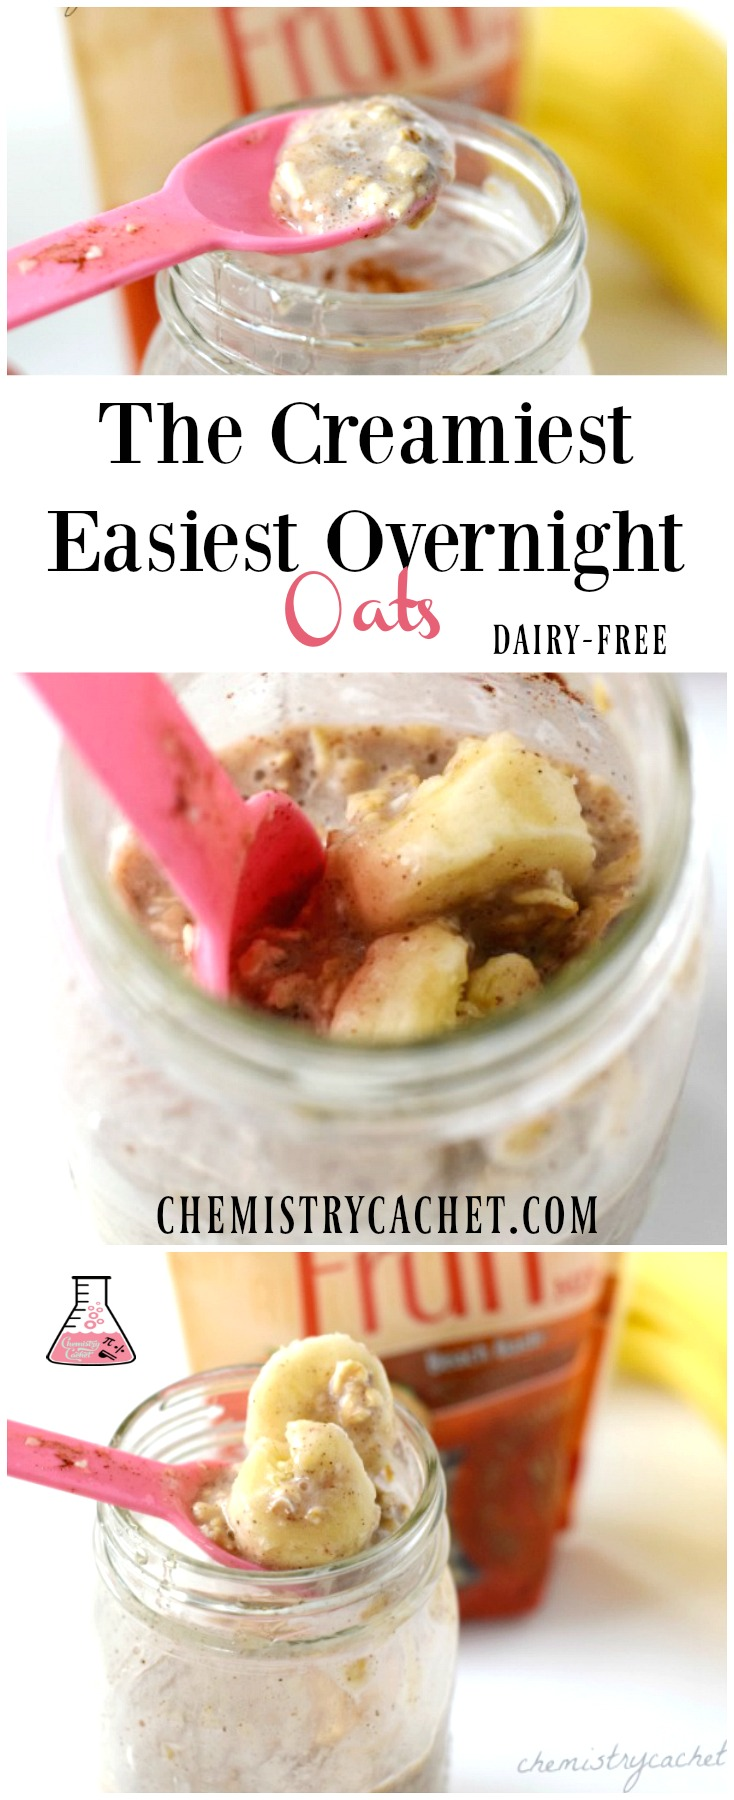 Easy Creamy Overnight Oats Recipe that is dairy-free too! Full of creamy cinnamon and honey flavor, with banana and @enjoylifefoods seed and fruit mix. Details on chemistrycachet.com